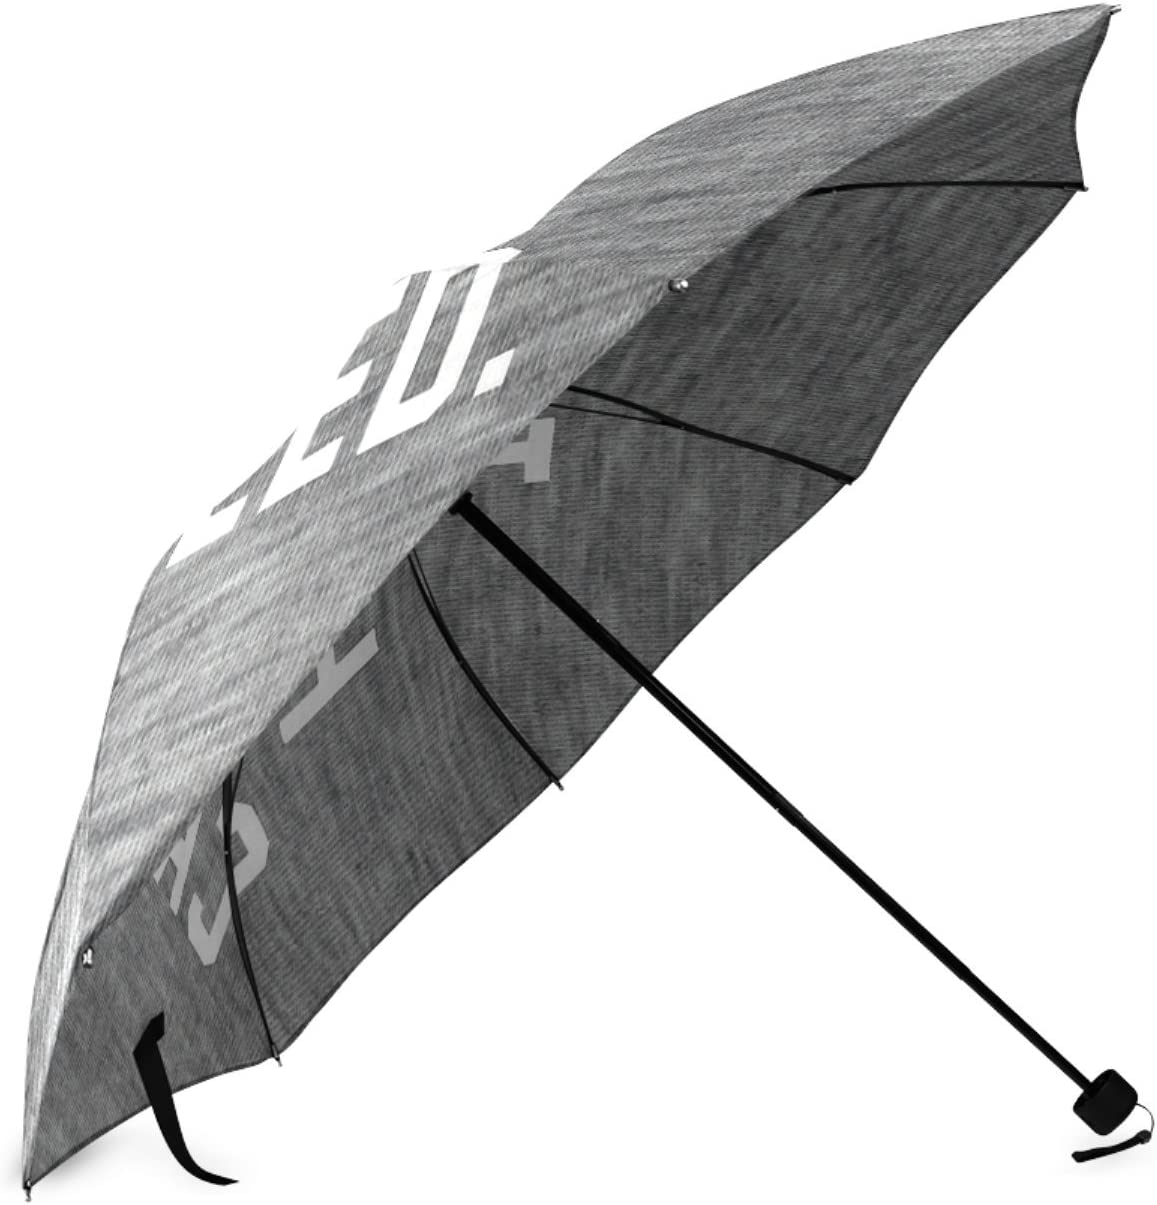 Personalized Today Has Been Cancelled Sun Rain Travel Umbrella Waterproof